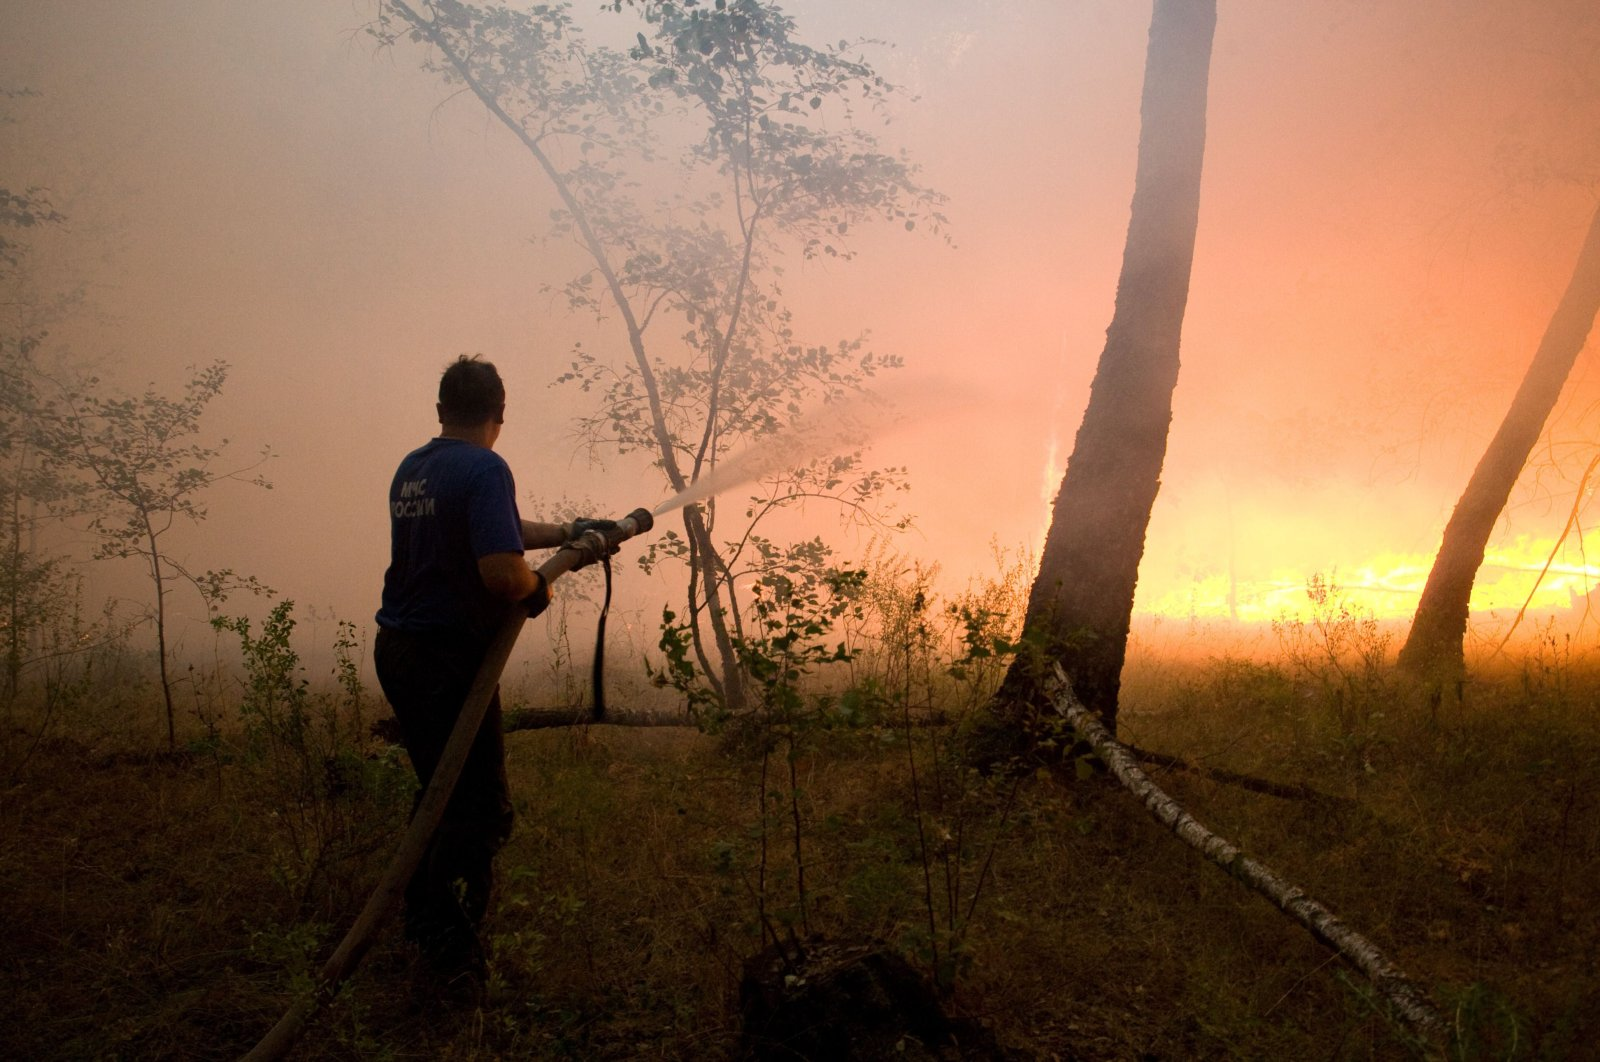 A fire fighter attempts to extinguish a forest fire near the village of Dolginino in the Ryazan region, some 180 km (111 miles) southeast of Moscow, Wednesday, Aug. 4, 2010. (AP Photo)